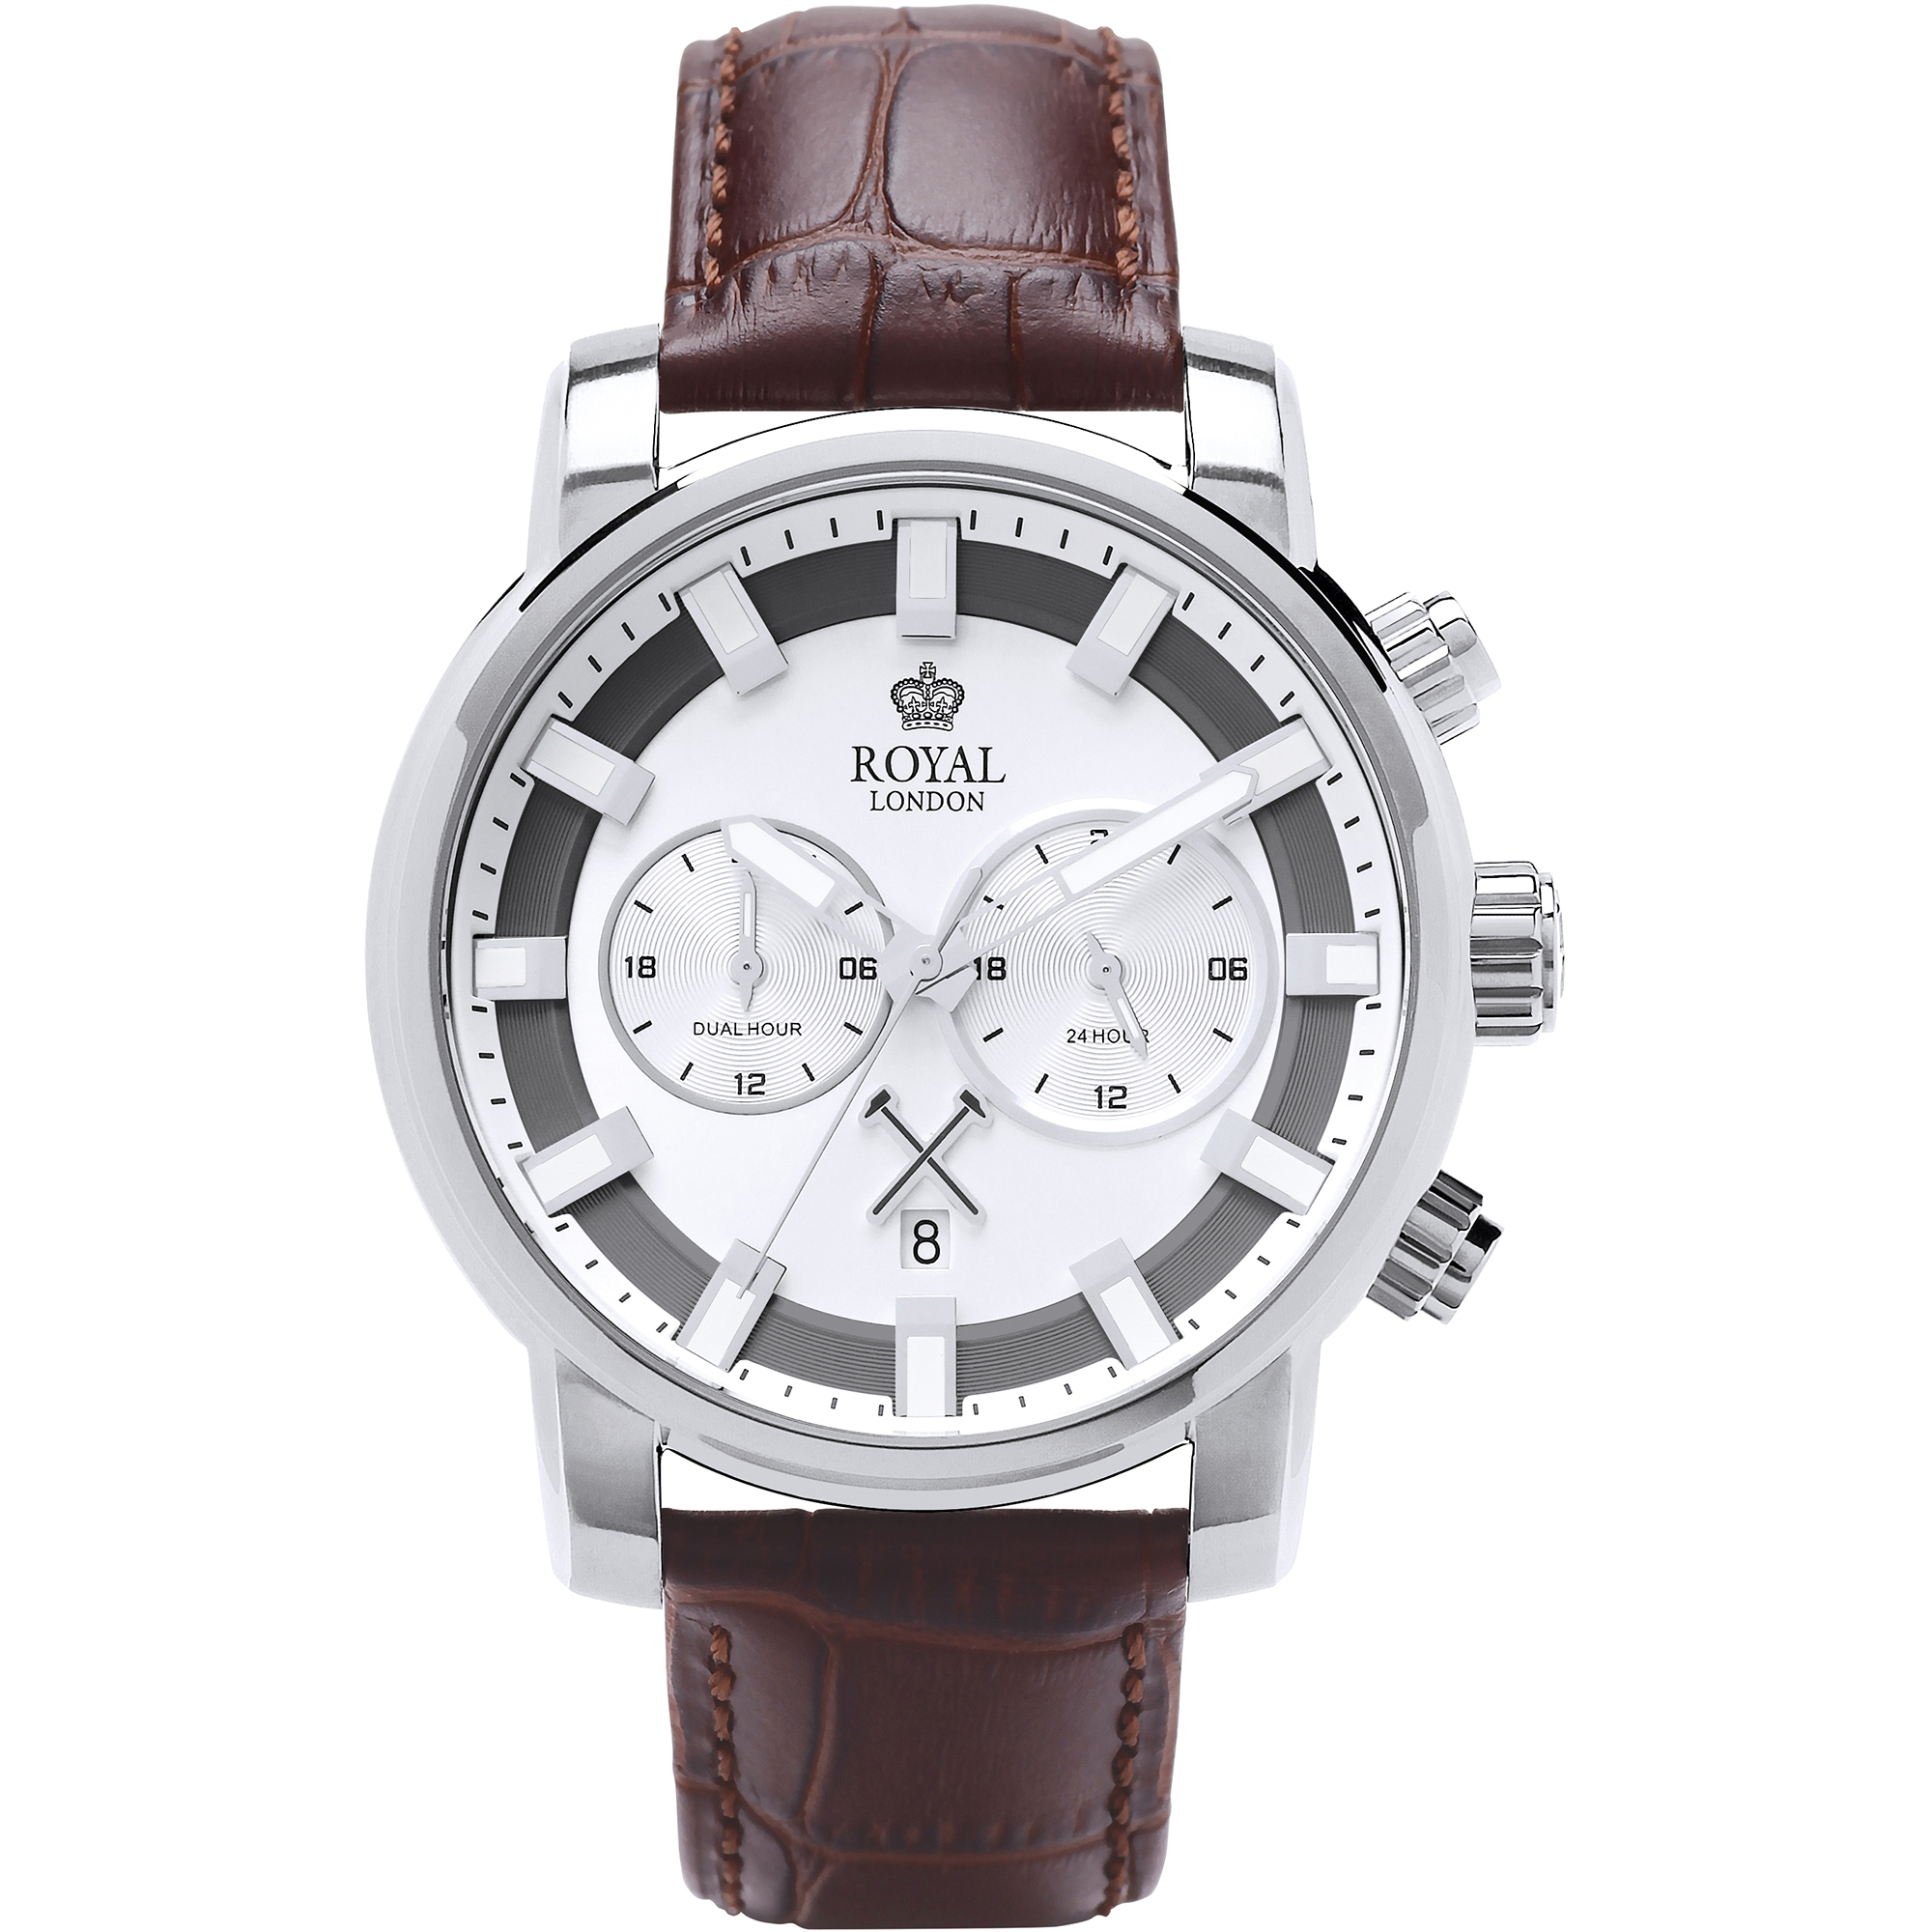 ROYAL LONDON 4 SS MULTI FUNCTION WATCH BROWN STRAP